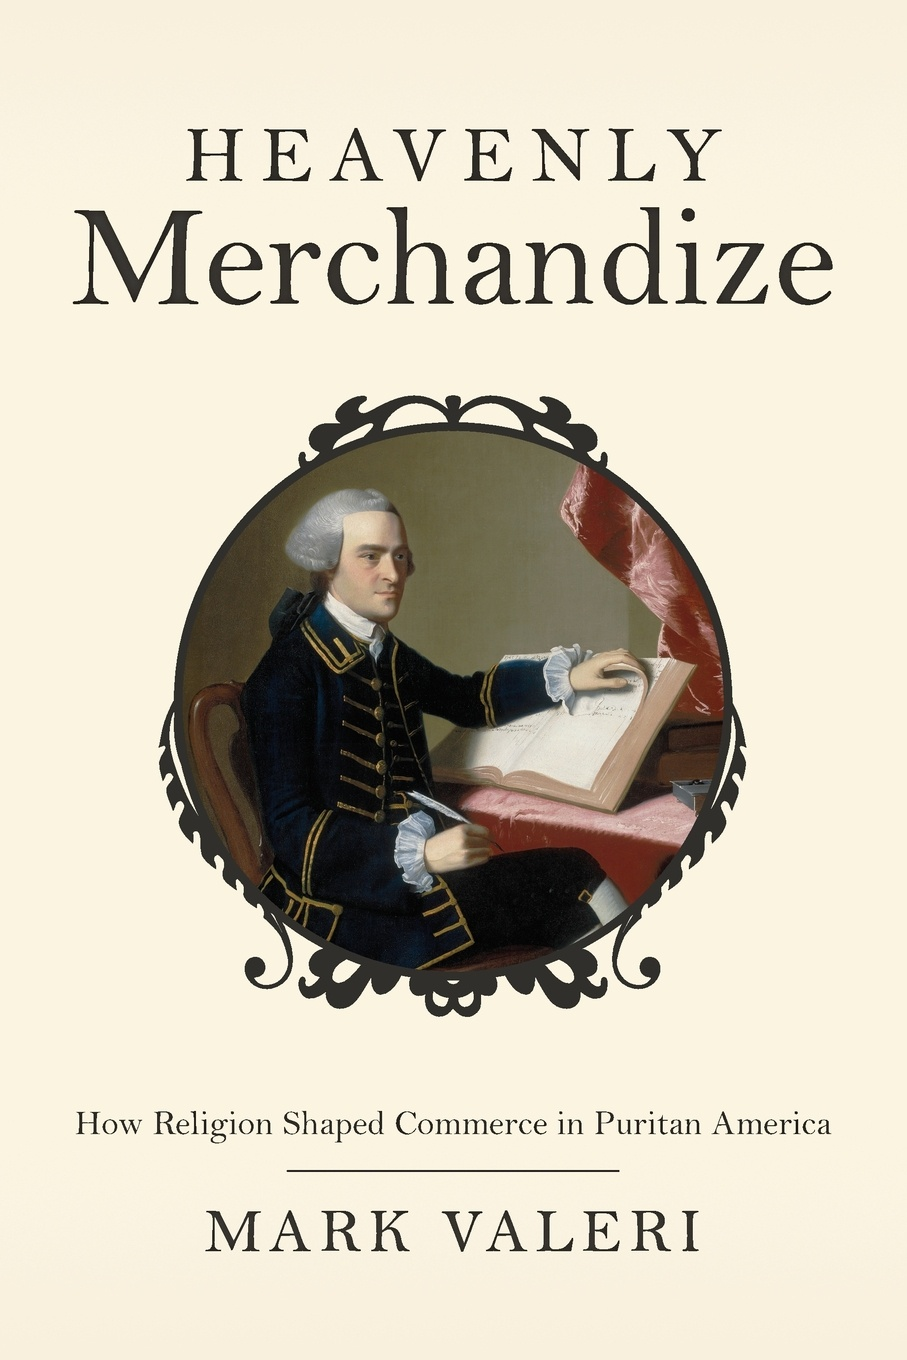 Mark Valeri Heavenly Merchandize. How Religion Shaped Commerce in Puritan America elisa new new england beyond criticism in defense of america s first literature isbn 9781118854563